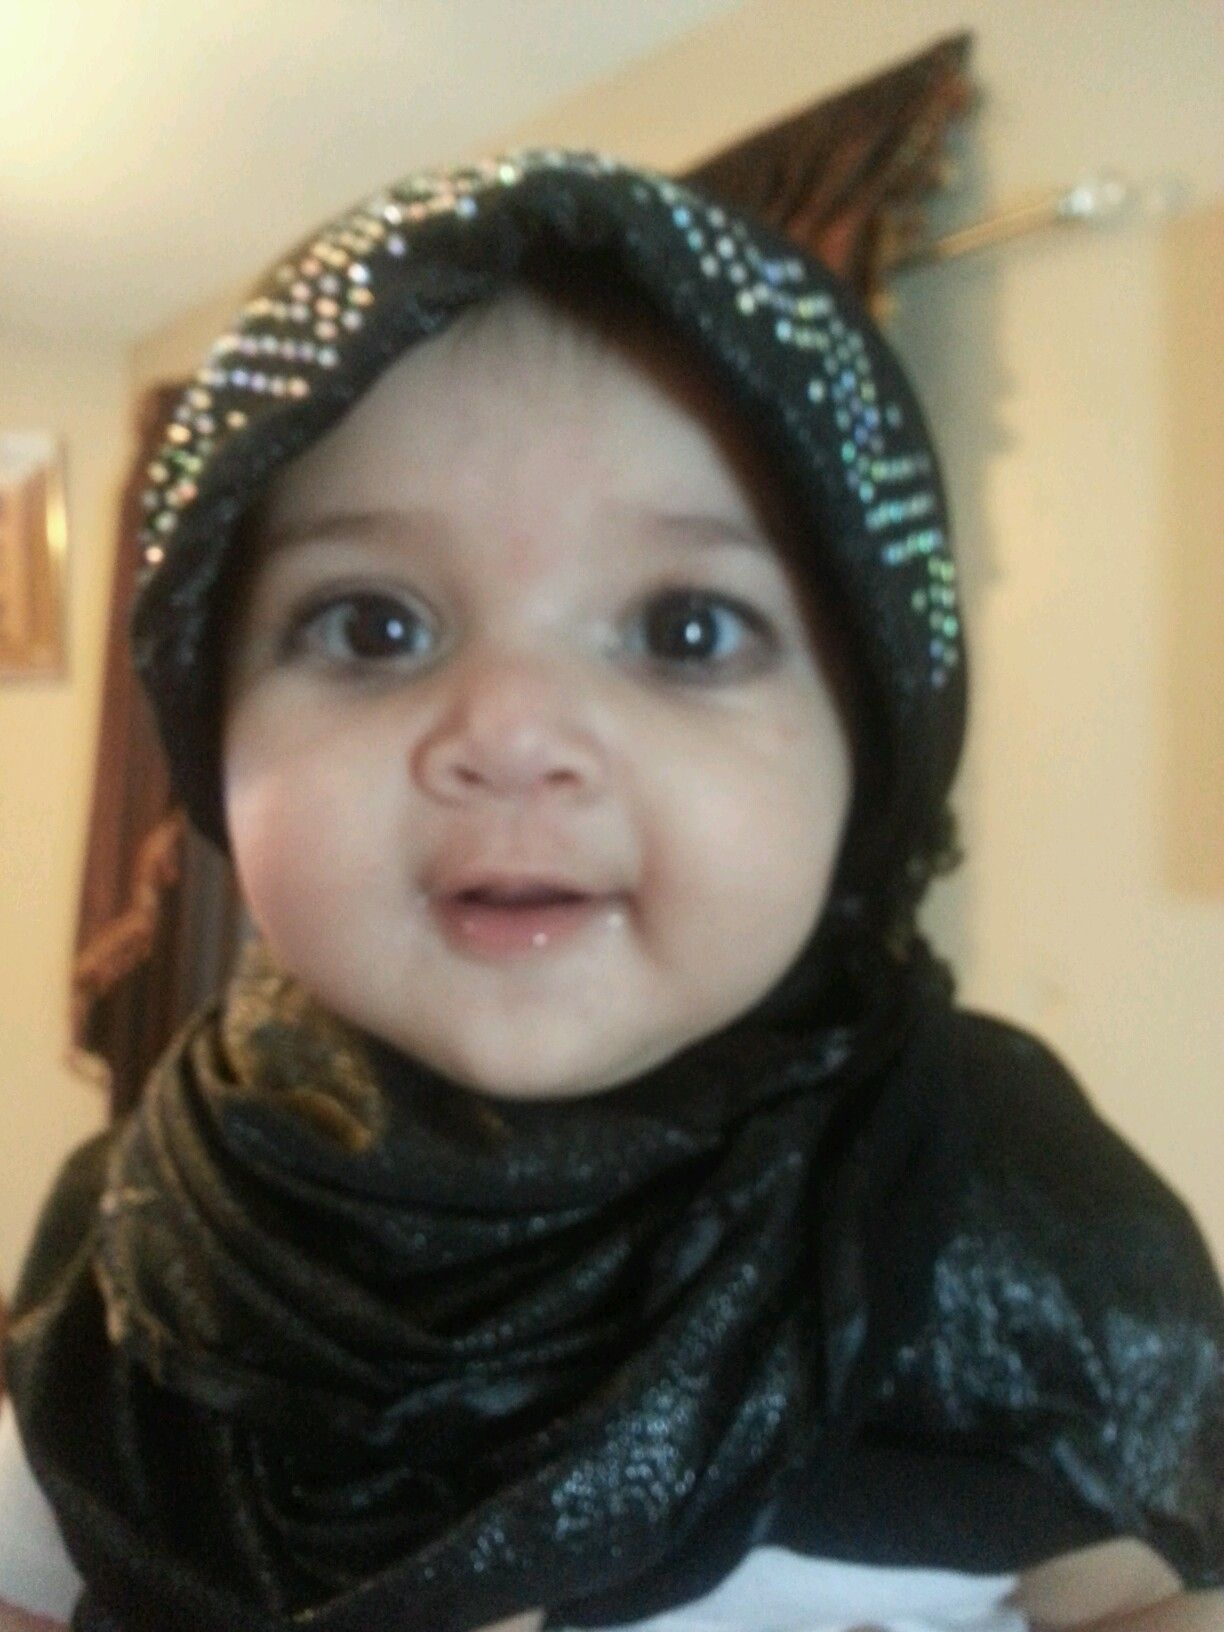 cute baby muslim khadija jan | muslim children | pinterest | muslim